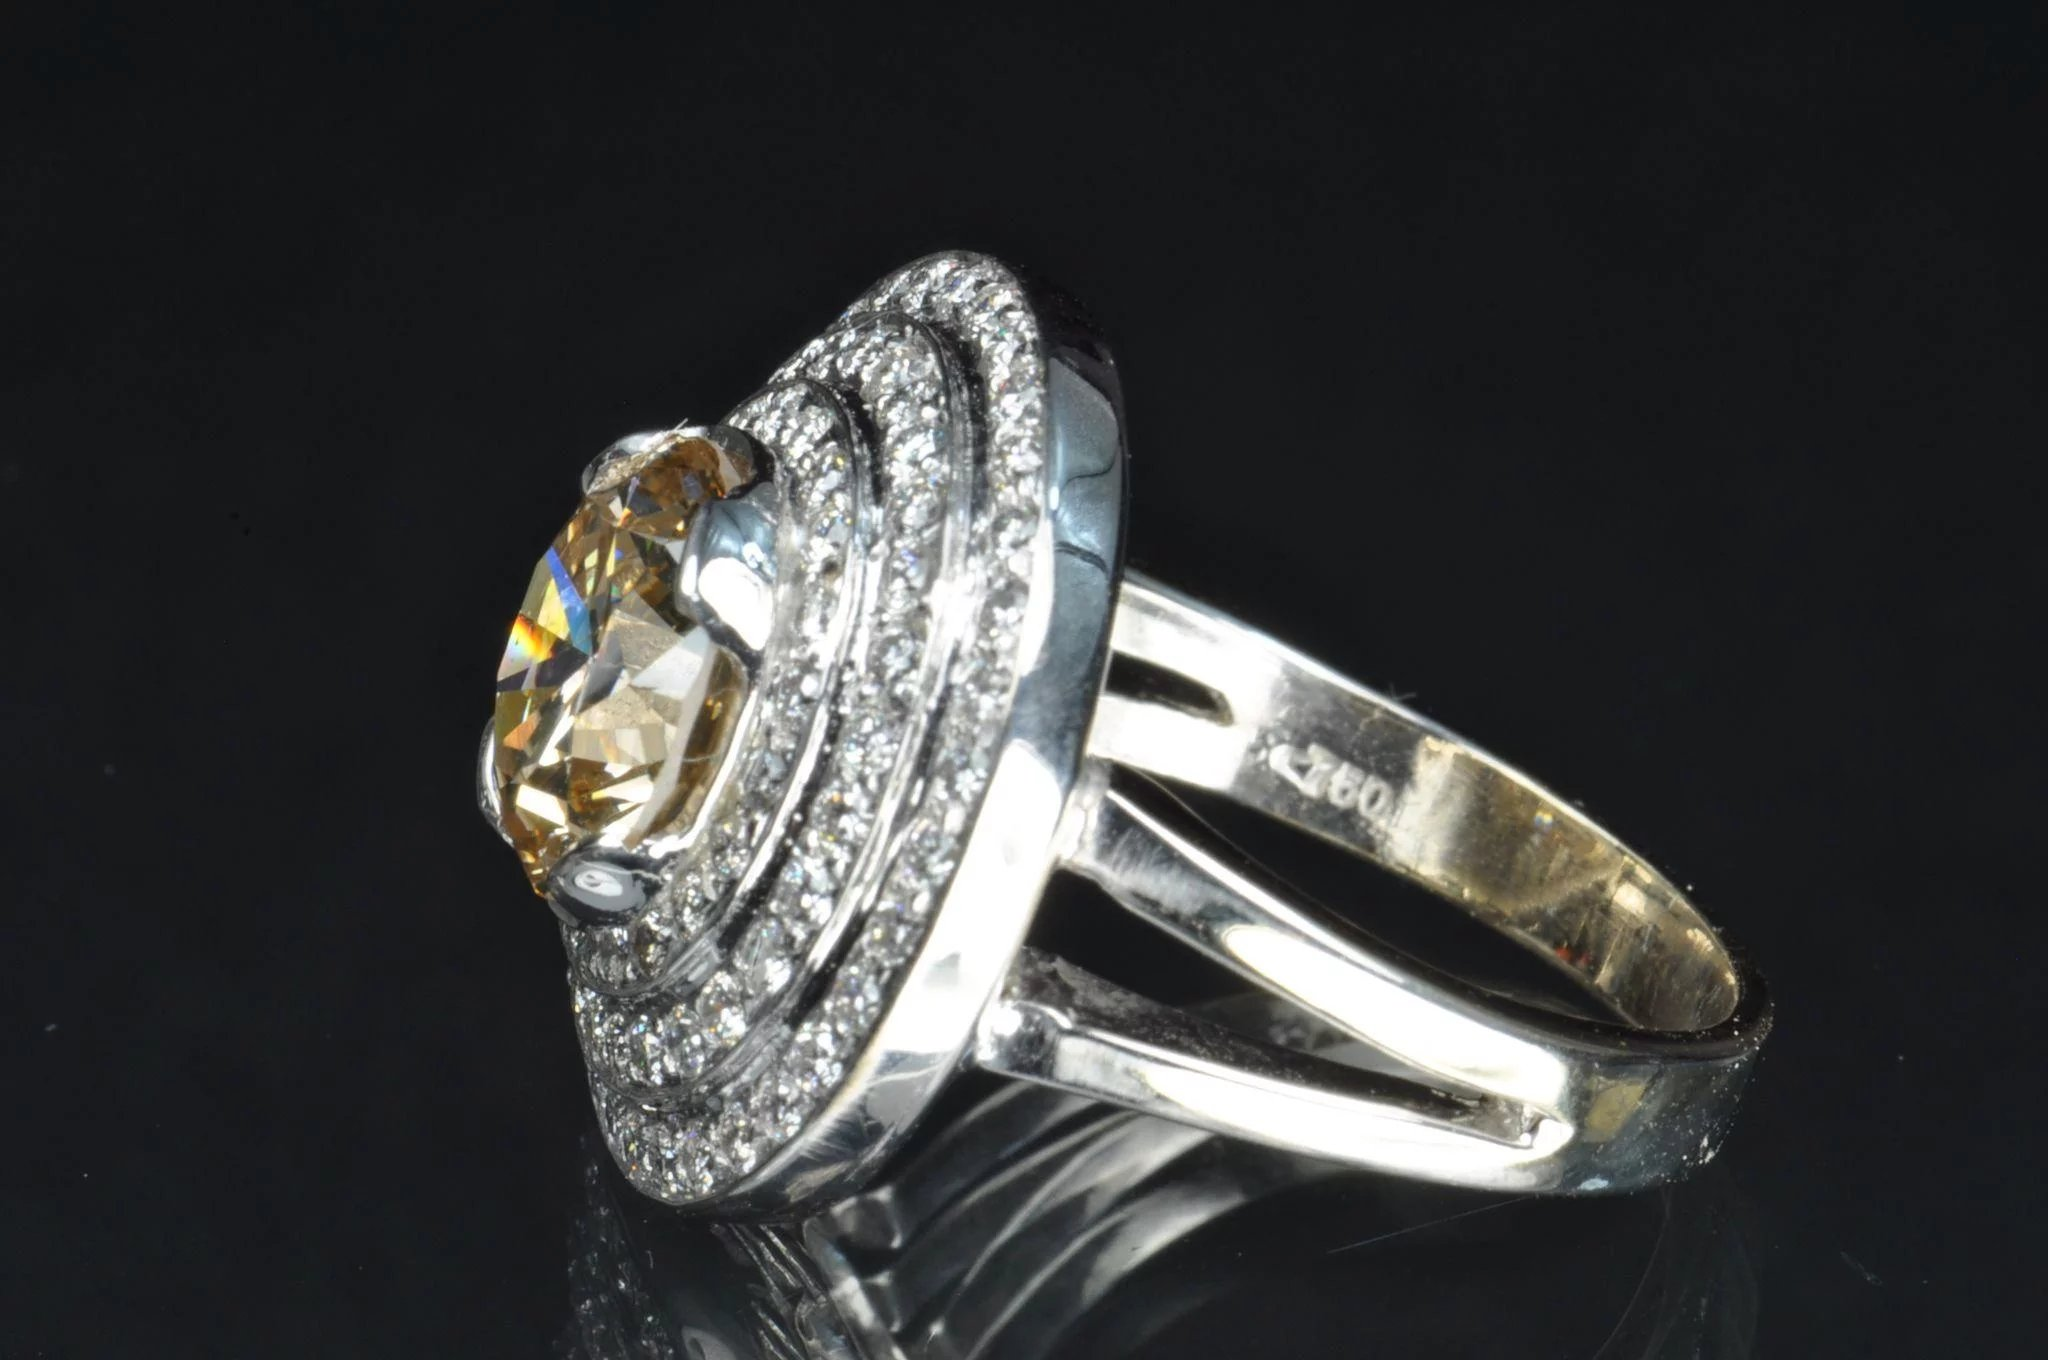 4 39 Carat Fancy Yellow Brown Diamond Ring 3 22 Carat